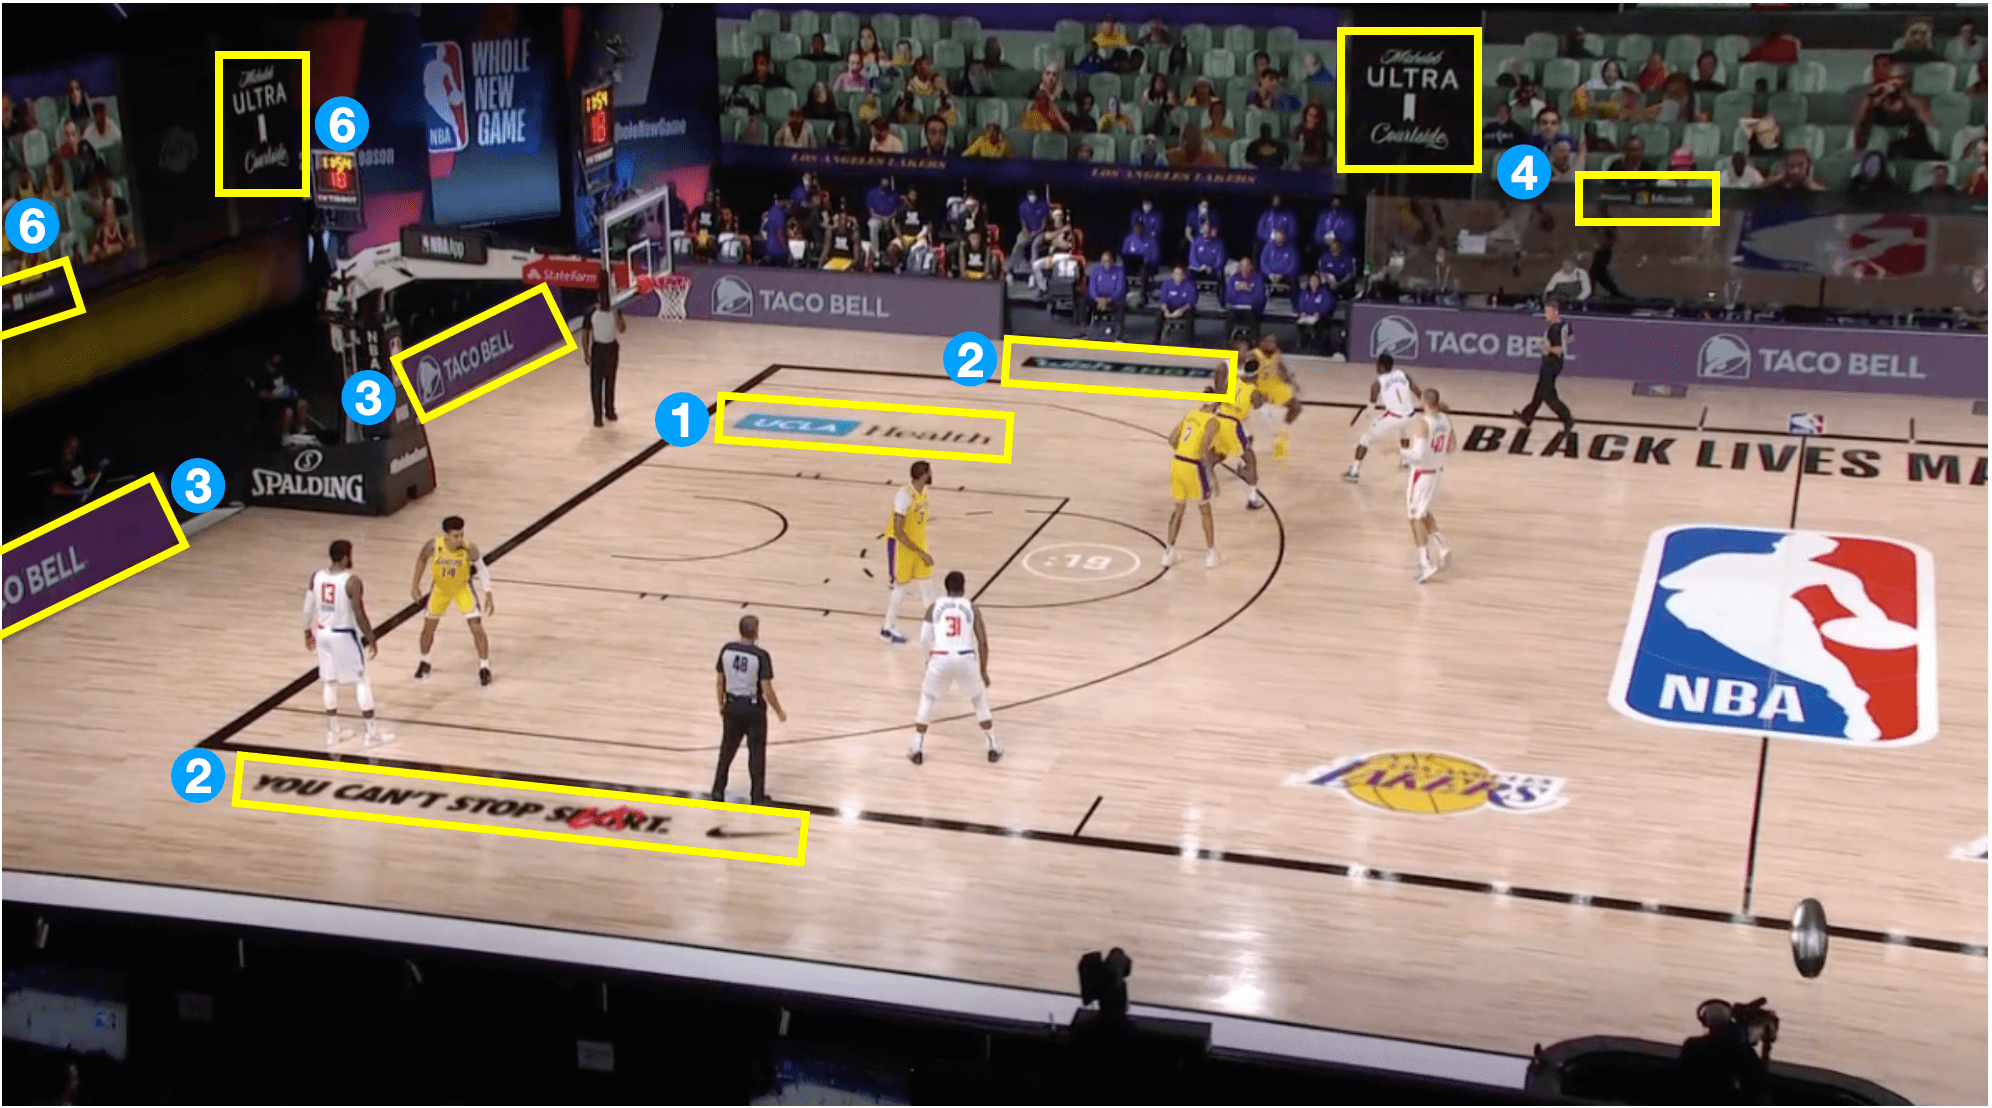 Location of logos on LA Lakers court